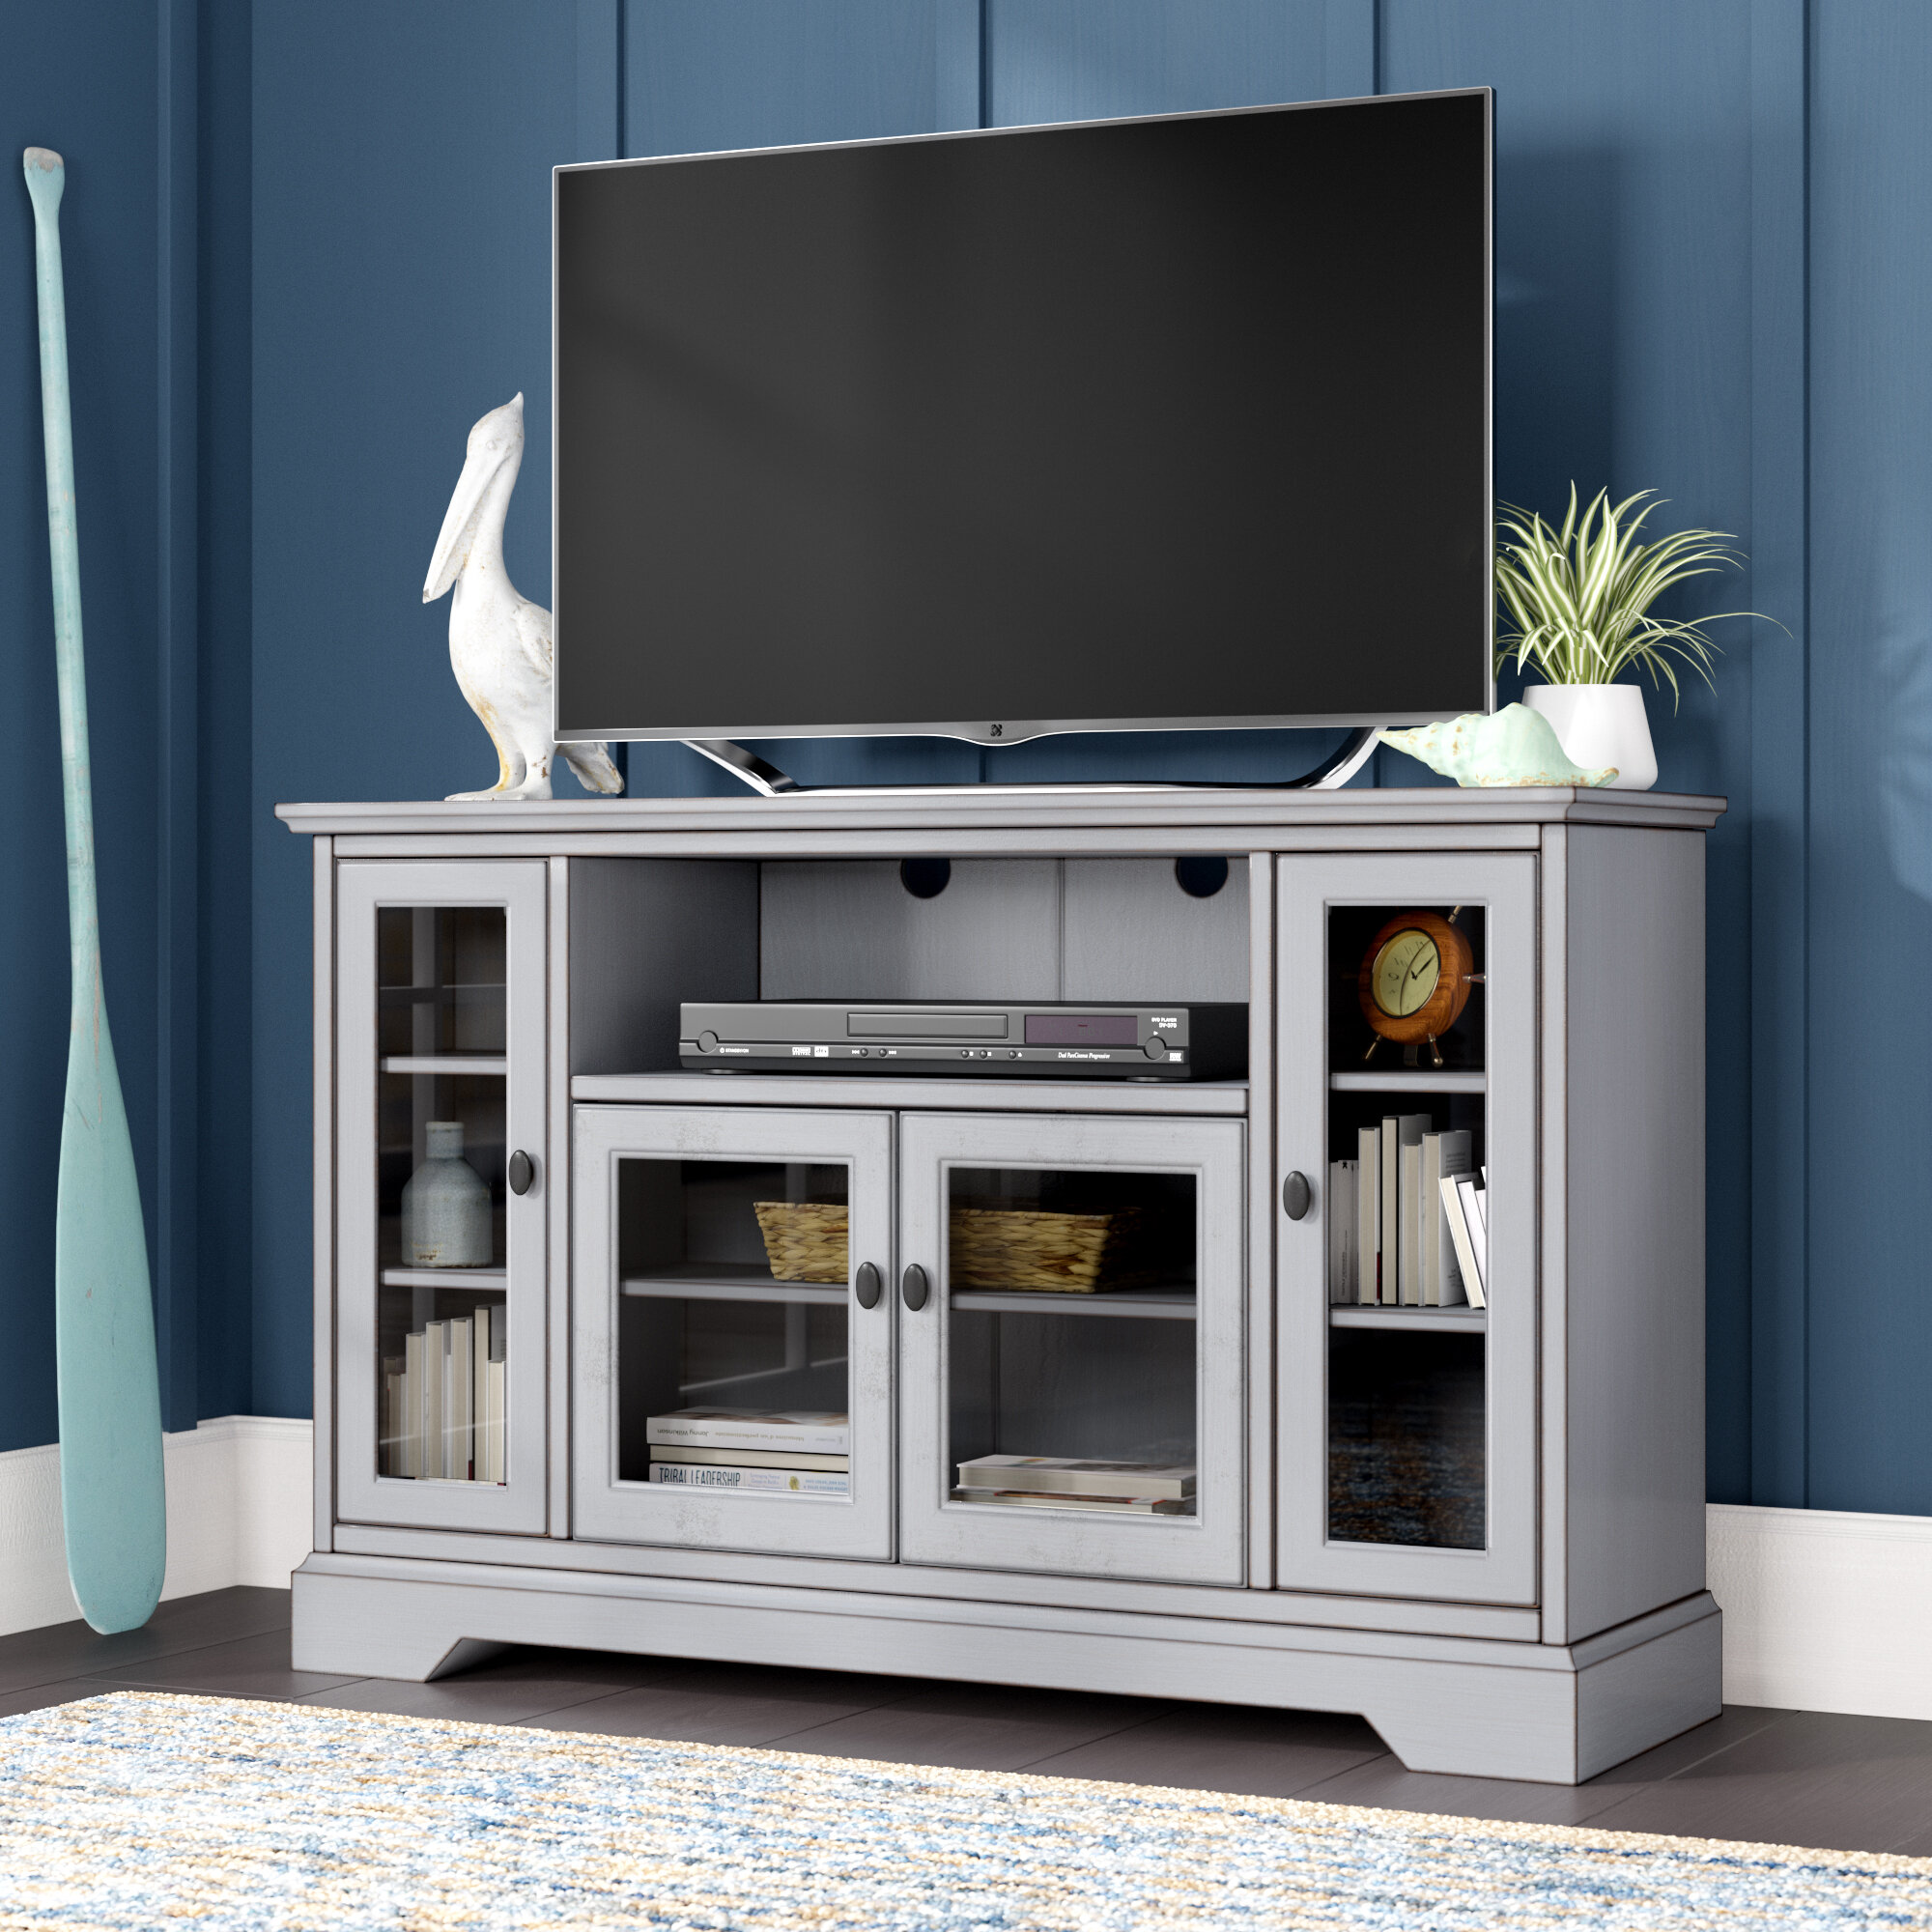 Beachcrest Home Josie Tv Stand For Tvs Up To 55 Reviews Wayfair